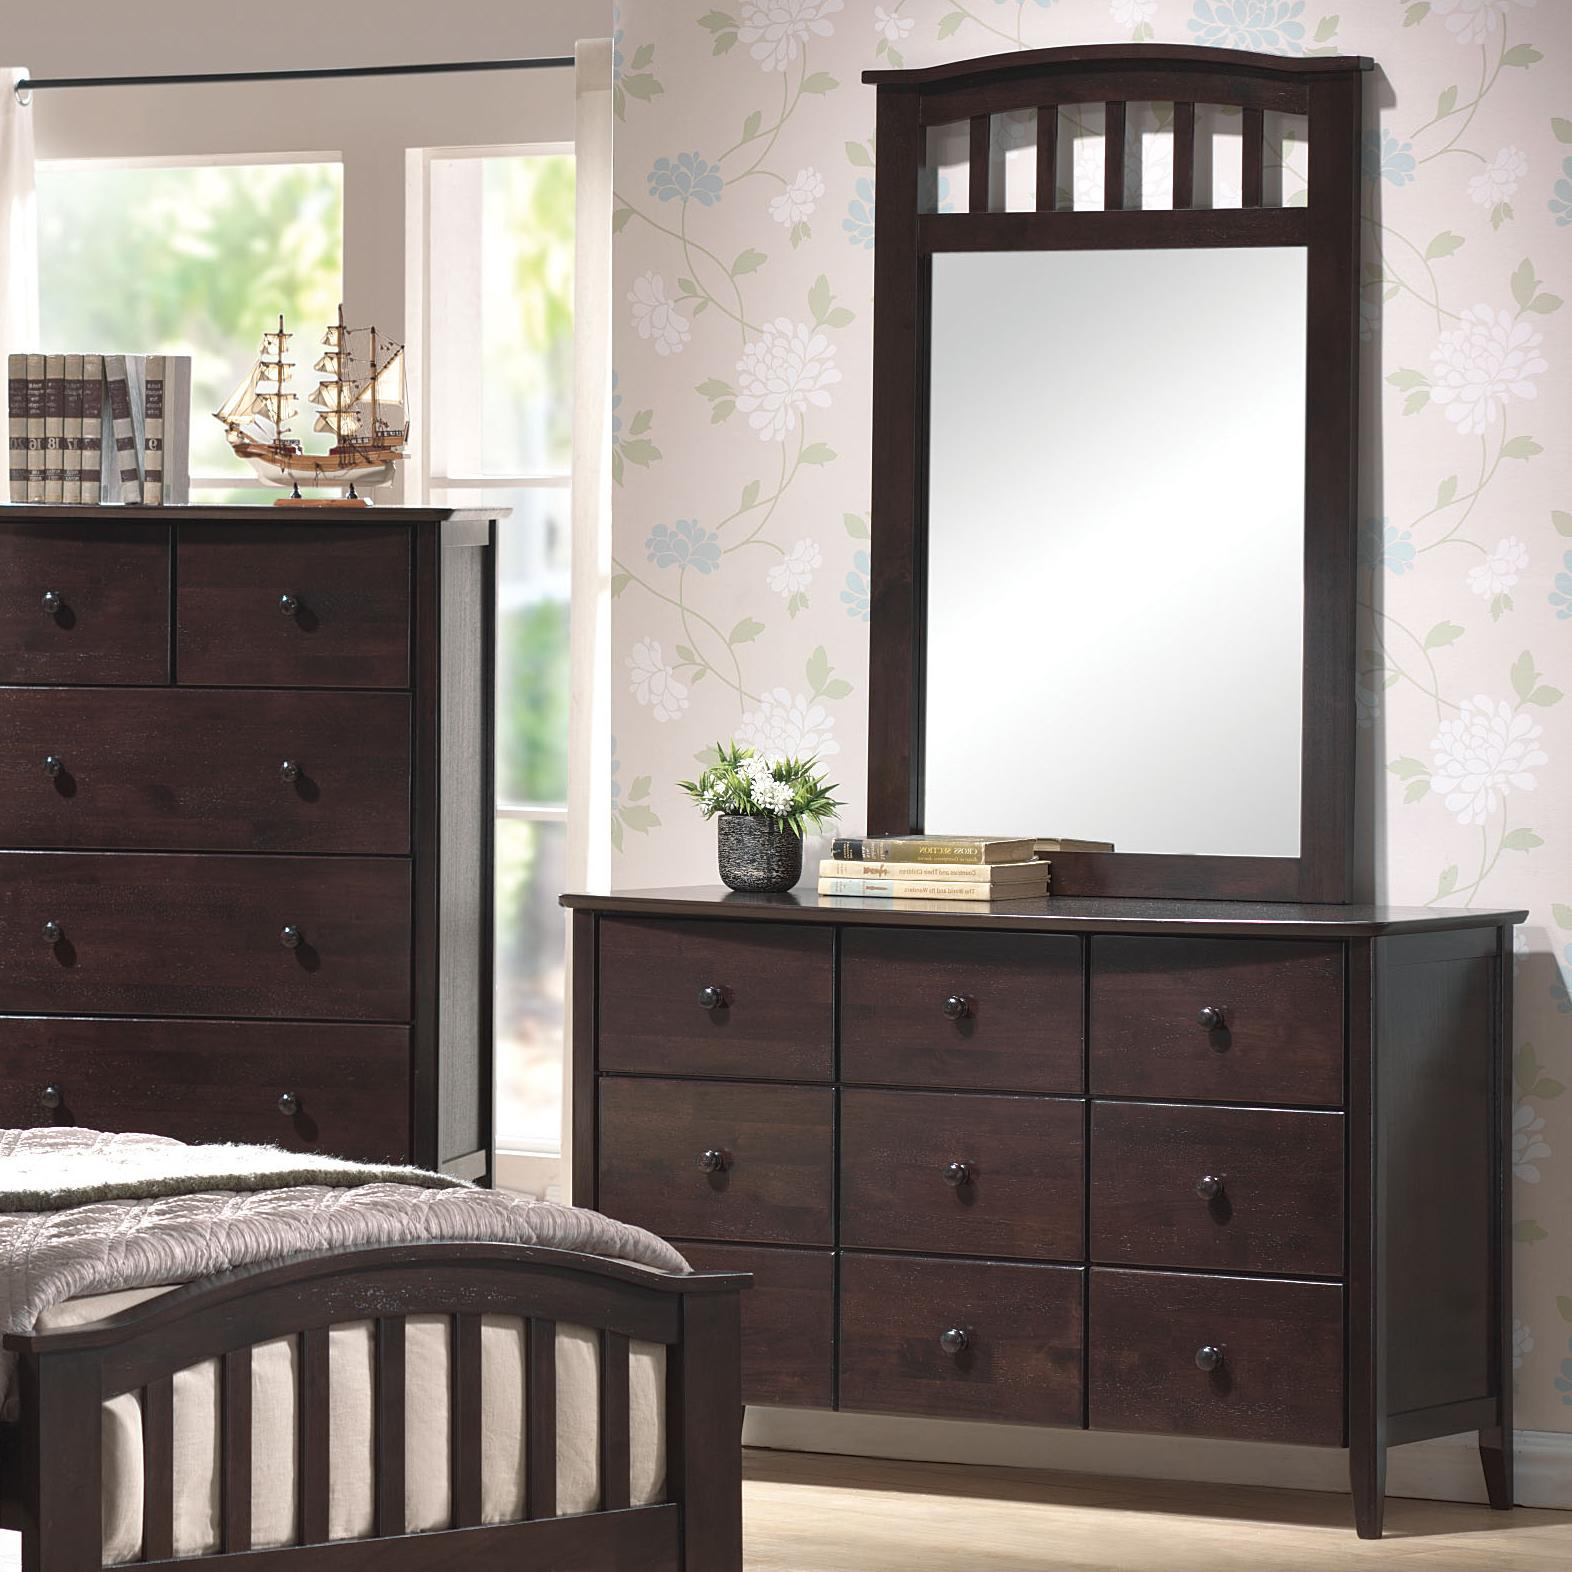 San Marino Dresser & Mirror Combo by Acme Furniture at Dream Home Interiors